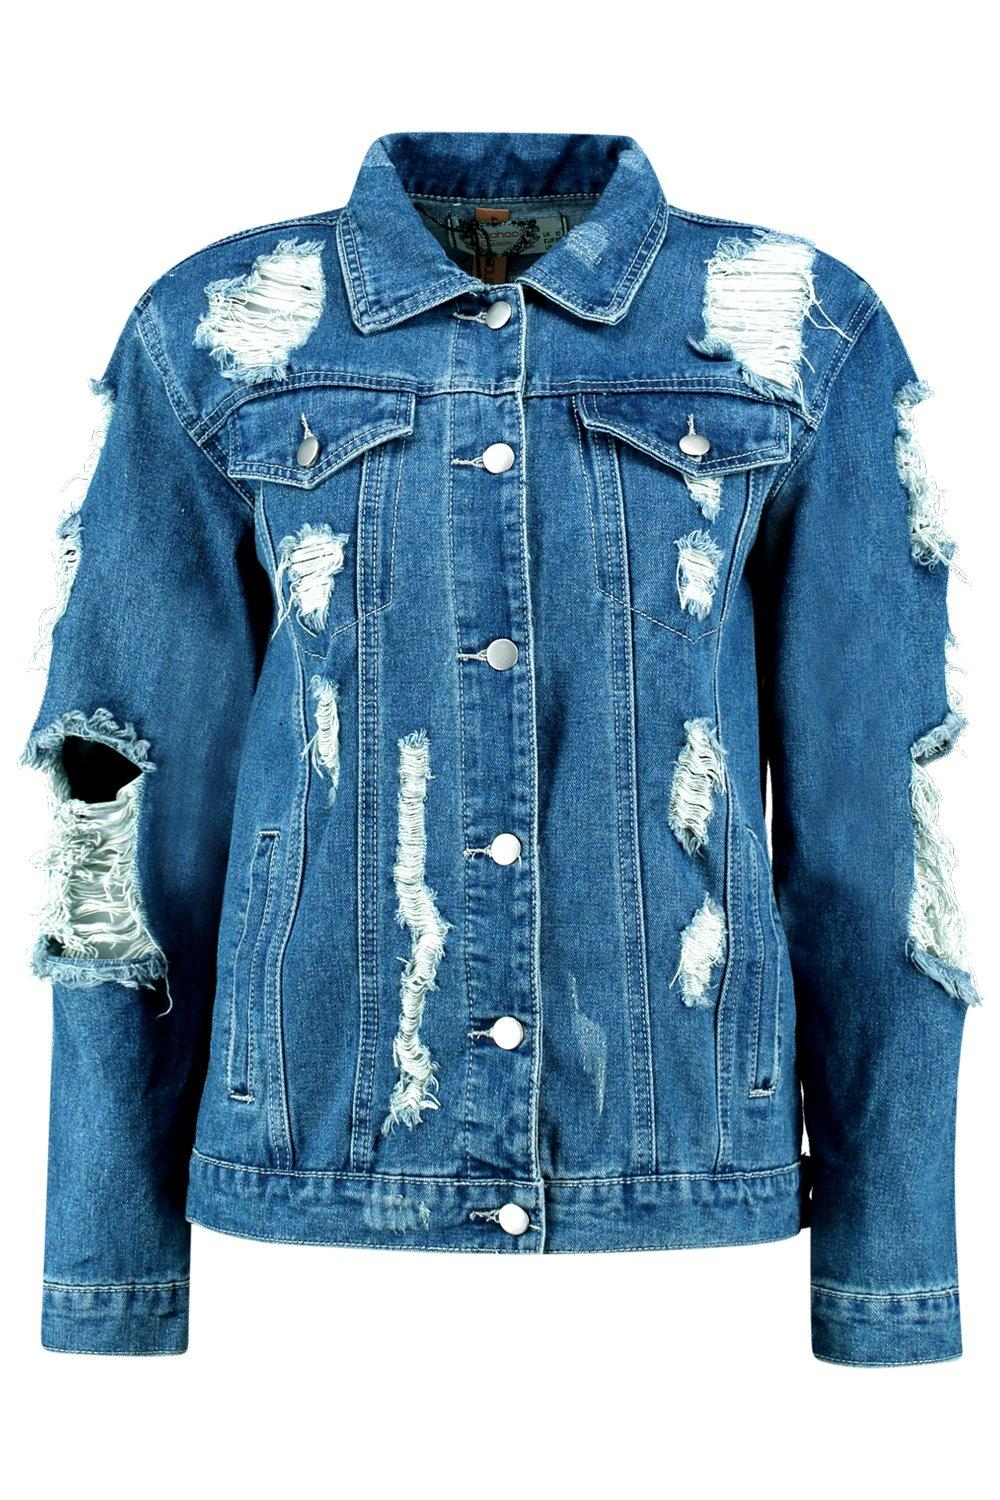 YESNO JQ3 Women Fashion Long Loose Maxi Distressed Denim Trench Jacket Coat Casual Plus Size Lapel Fringed Cut Large Hem. by YESNO. $ - $ $ 34 $ 69 99 Prime. FREE Shipping on eligible orders. Some sizes/colors are Prime eligible. out of 5 stars